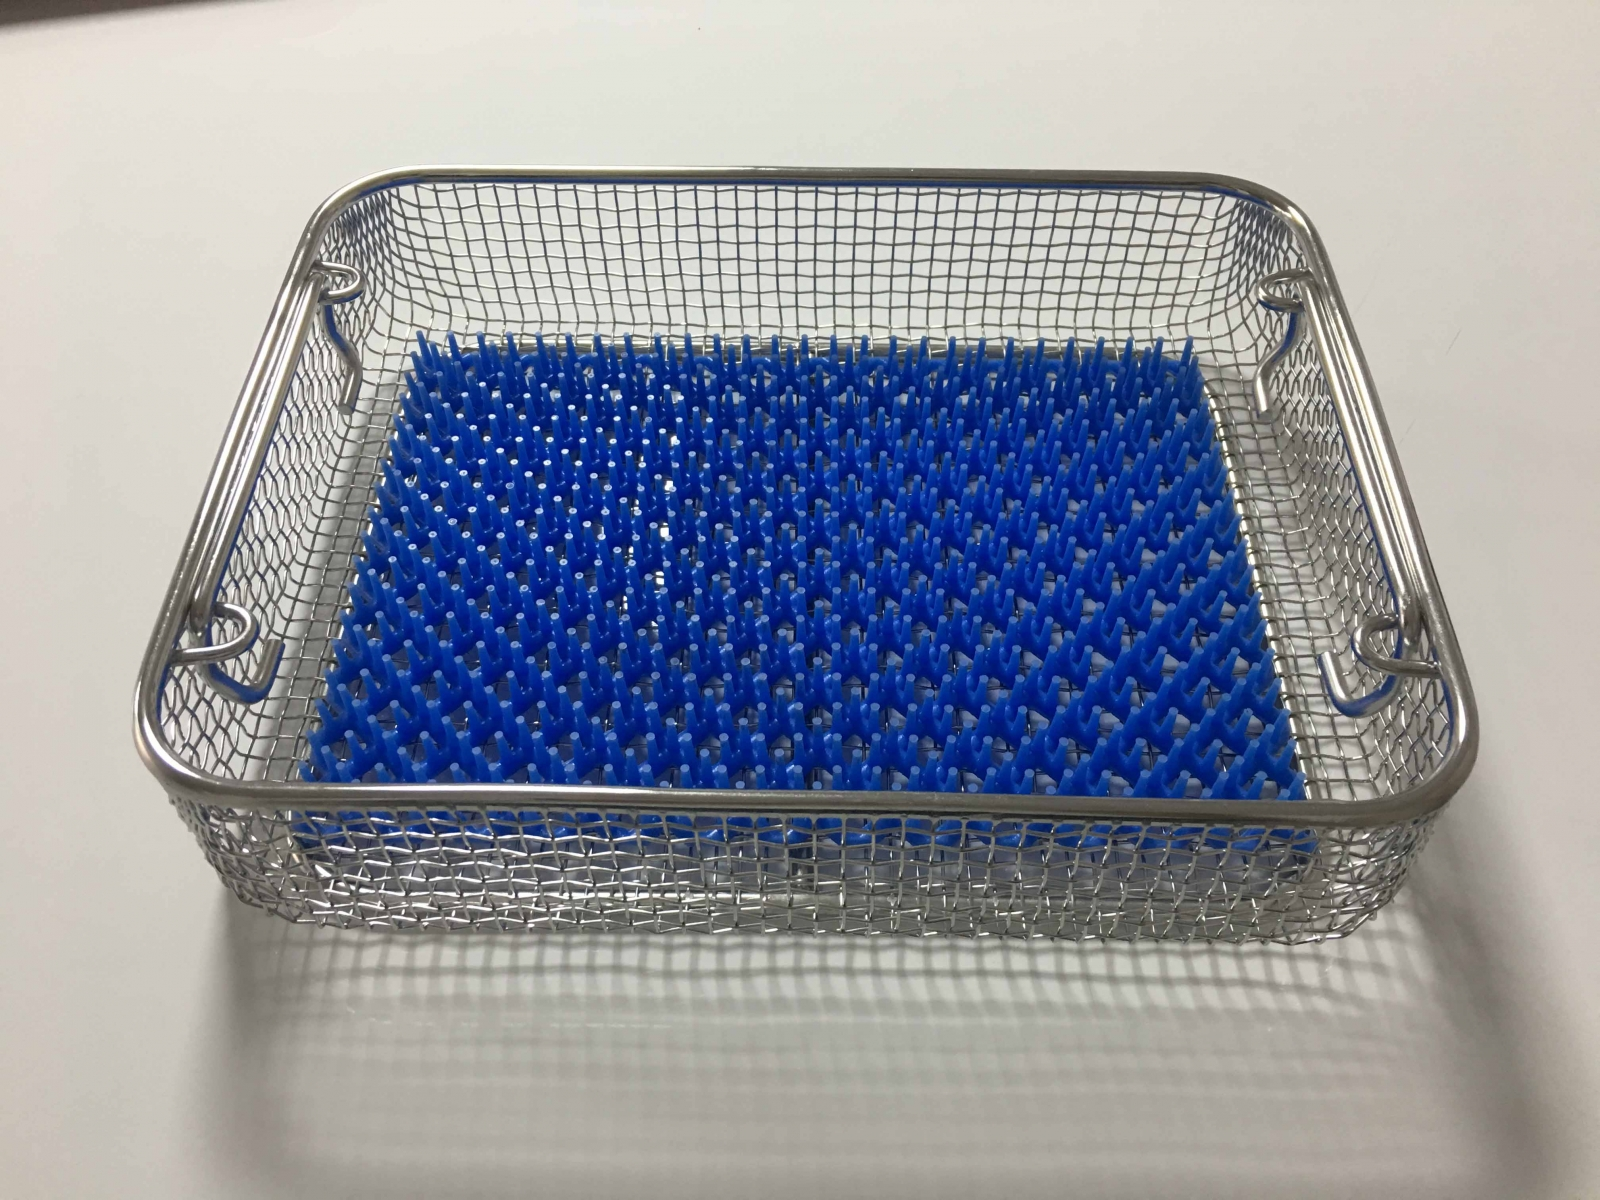 STERILIZATION CONTAINER WIRE BASKET